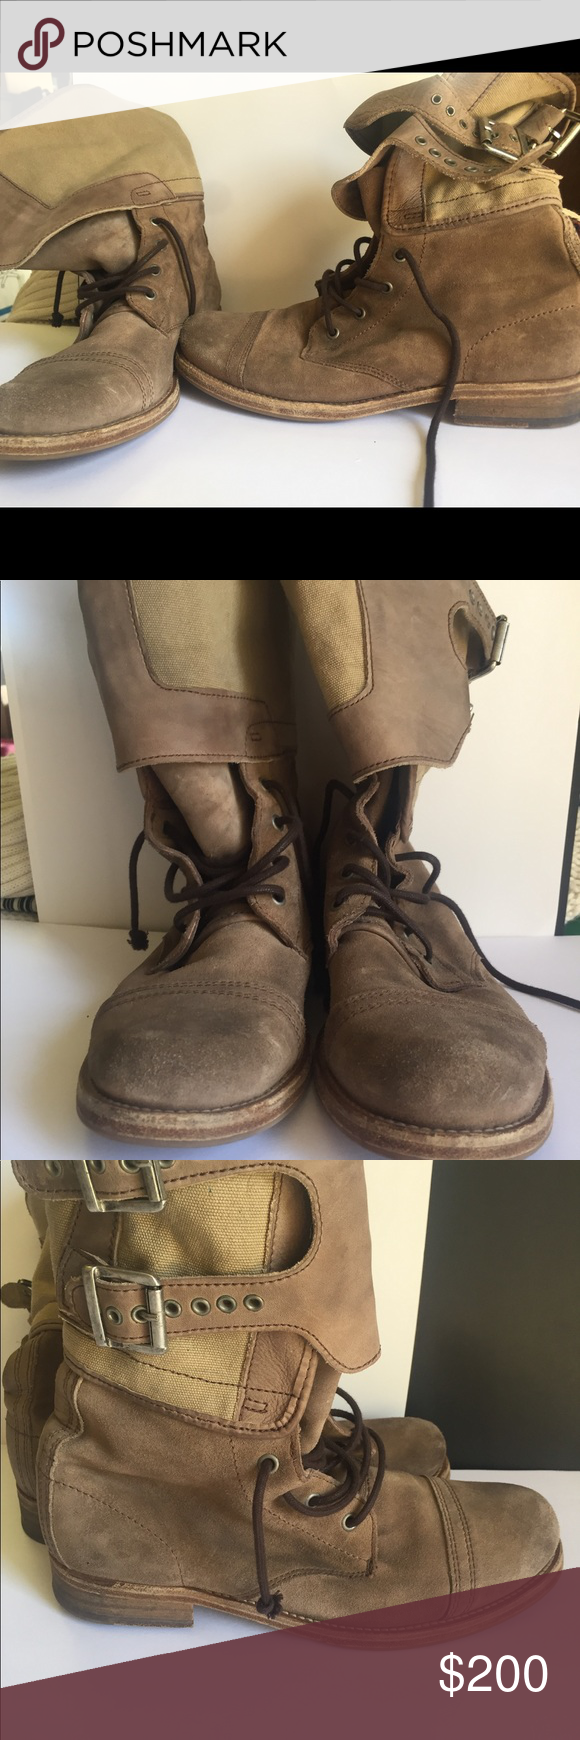 All Saints Boots Only worn 3-5 Times, in great condition! They can be dressed up or worn casually! Love how they can be worn slouchy for an edgy look as well. All Saints Shoes Lace Up Boots